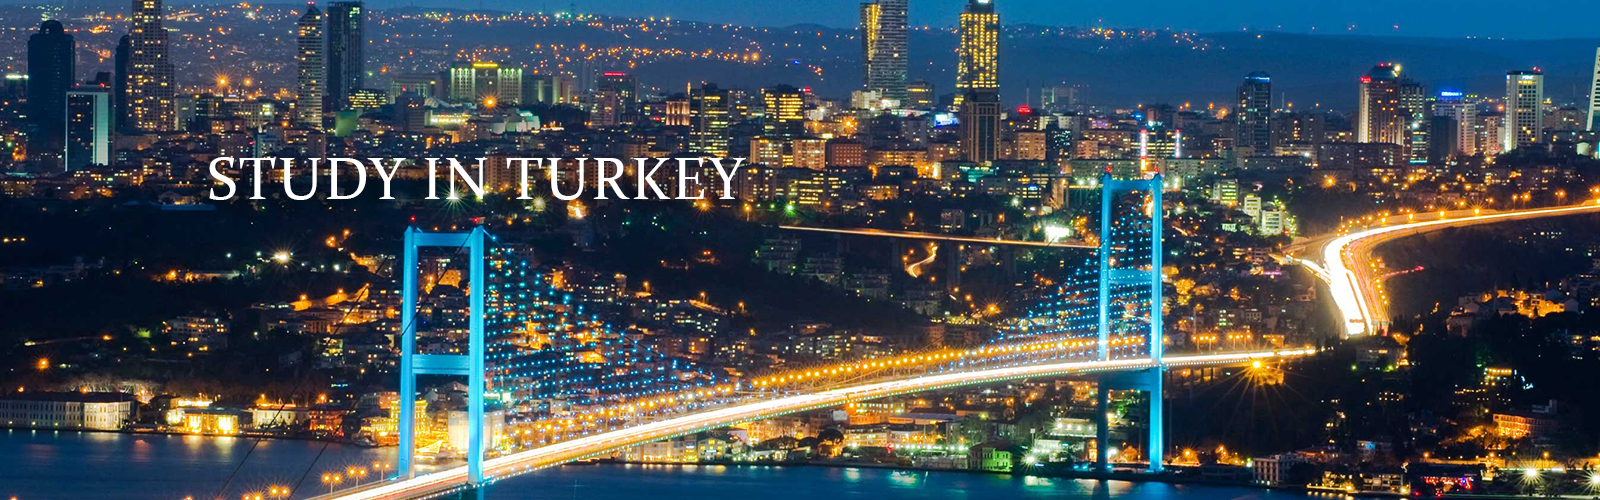 Study In Turkey Education Consultants In Amritsar, Punjab & Chandigarh